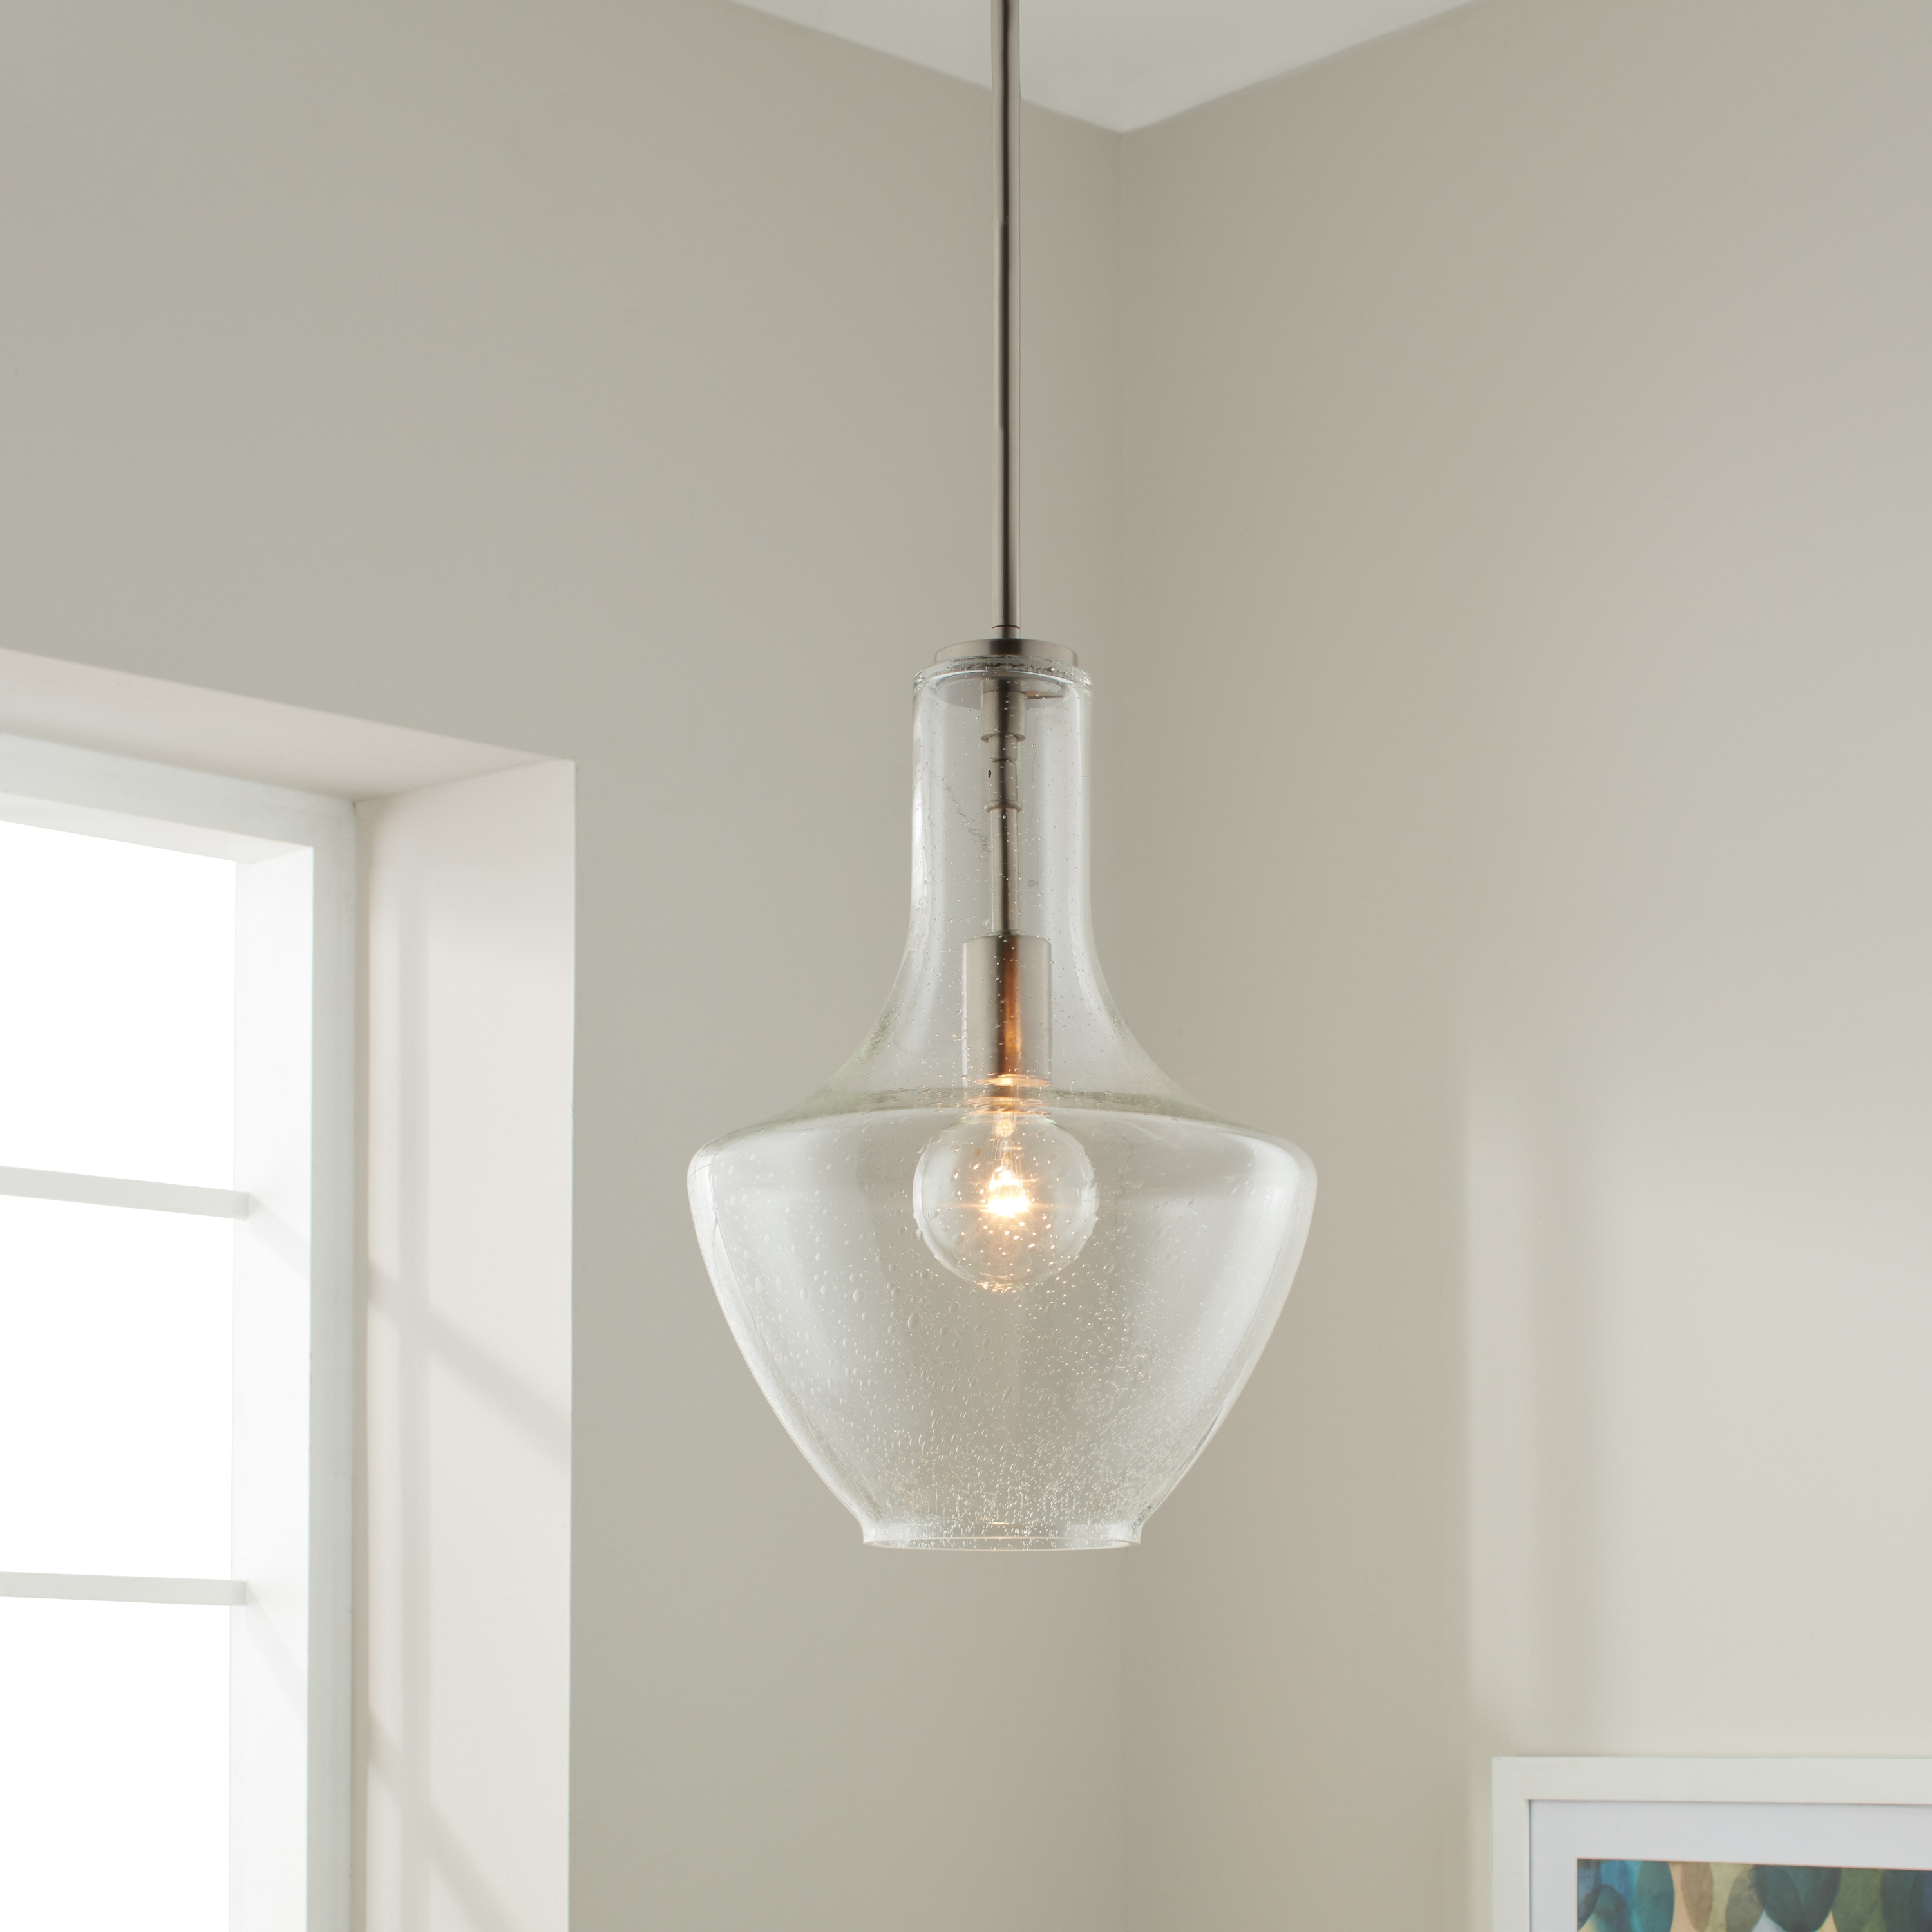 pdp lighting island odie pendant light kitchen reviews allmodern